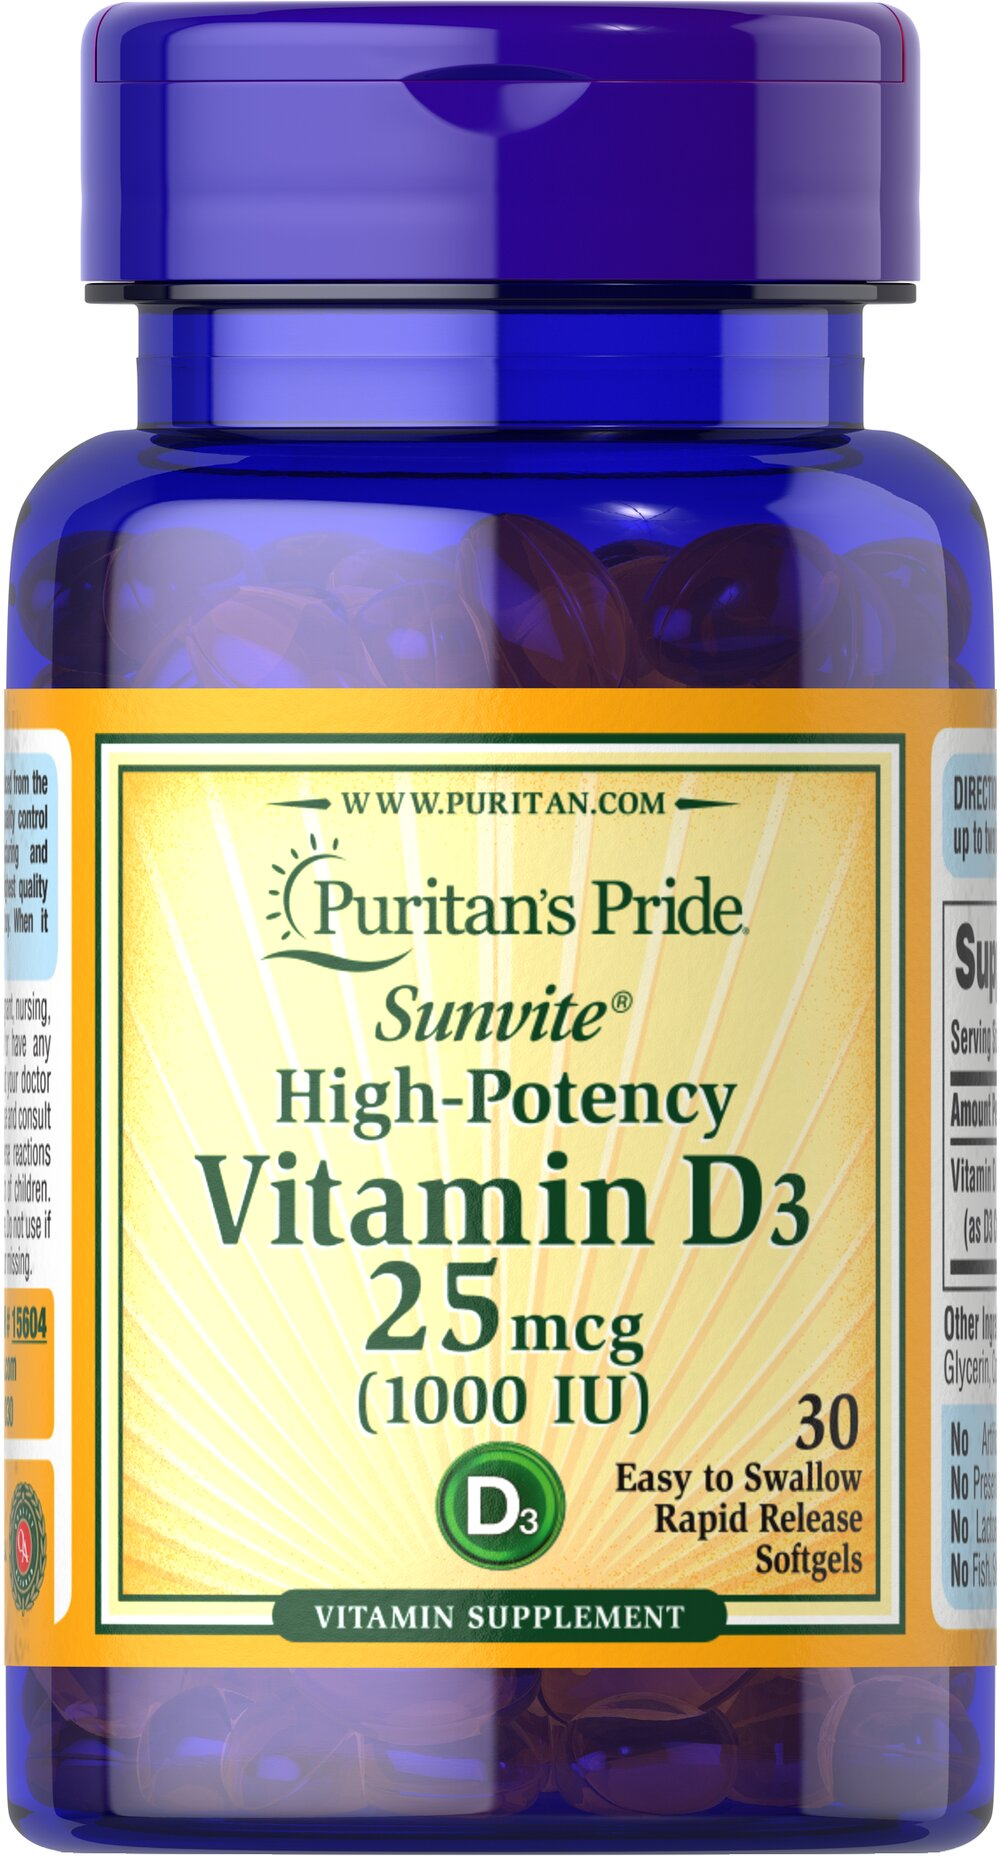 "Vitamin D3 1000 IU <p>Sample the supplement that has been all over the news the past two years – Vitamin D!</p><p><span></span>Vitamin D is known for helping build <a href=""/bone-health-241?searchterm=bone%20health&rdcnt=1"">bone health</a> , plus it supports a healthy immune system.**</p> 30 Rapid Release Softgels 1000 IU $1.19"